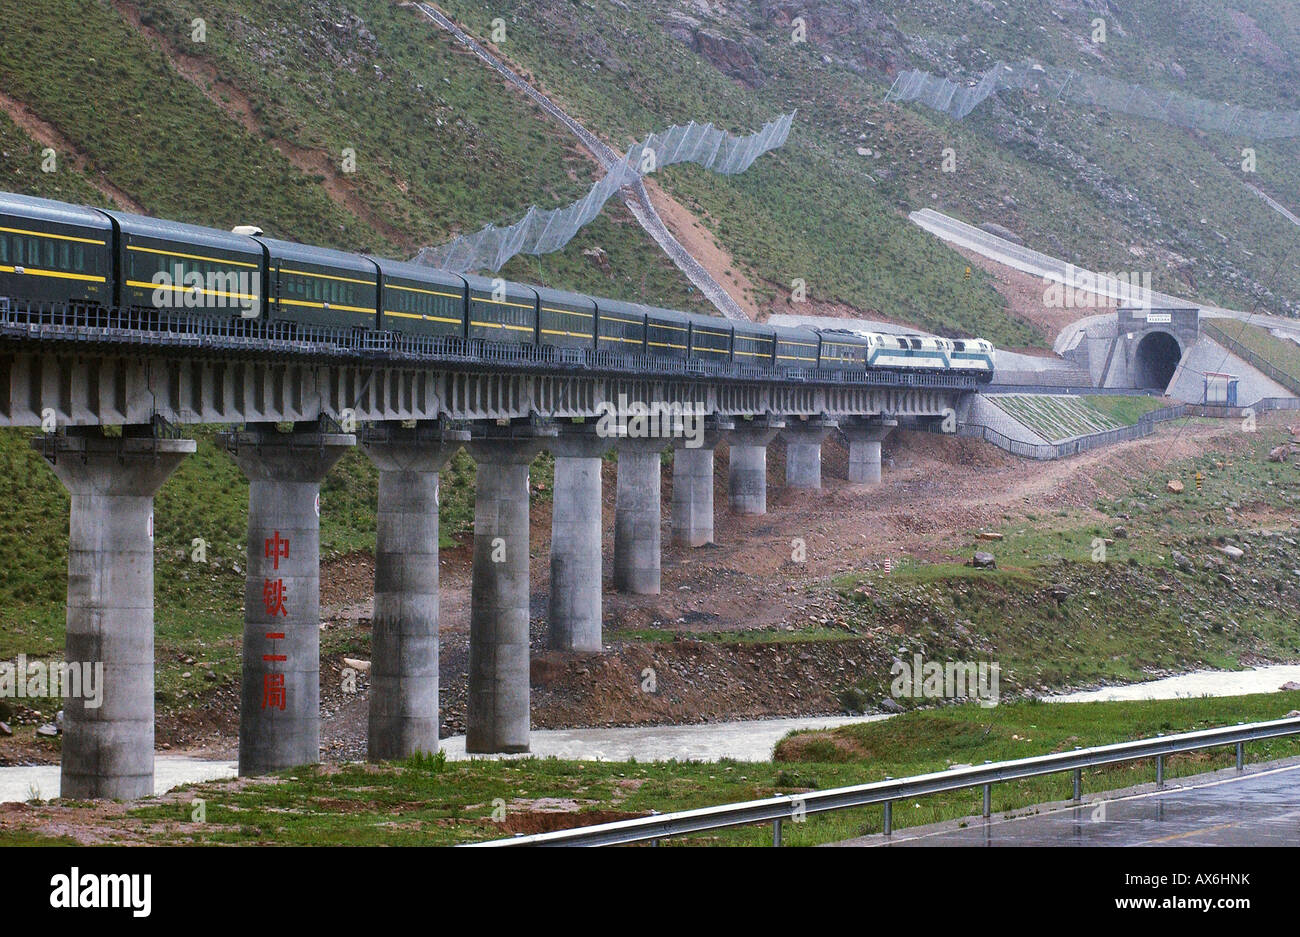 A train passes over a bridge on the Tibet railway, which opened in July 2006. - Stock Image